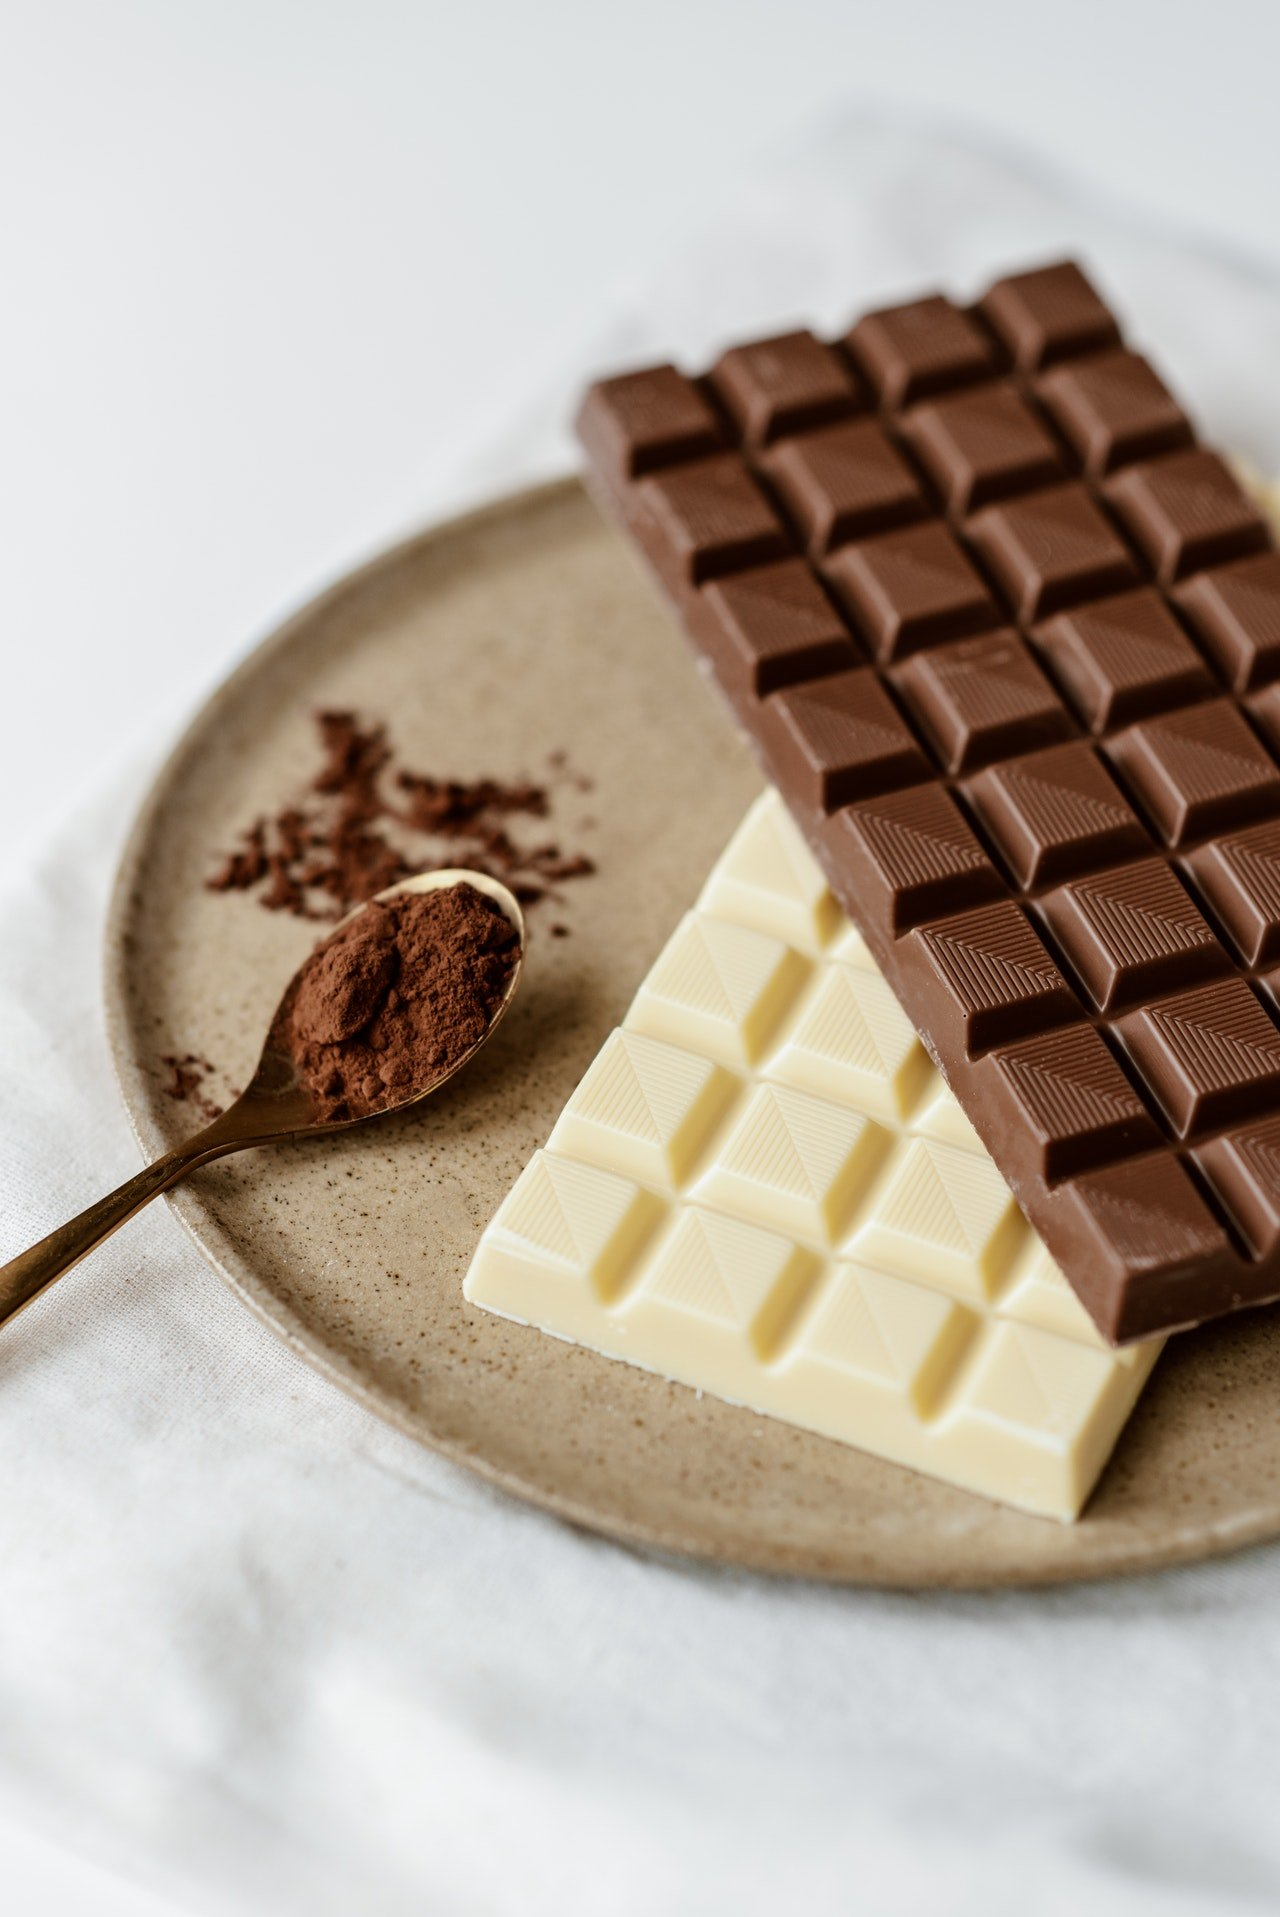 Photo of sweet chocolates on a plate | Photo: Pexels